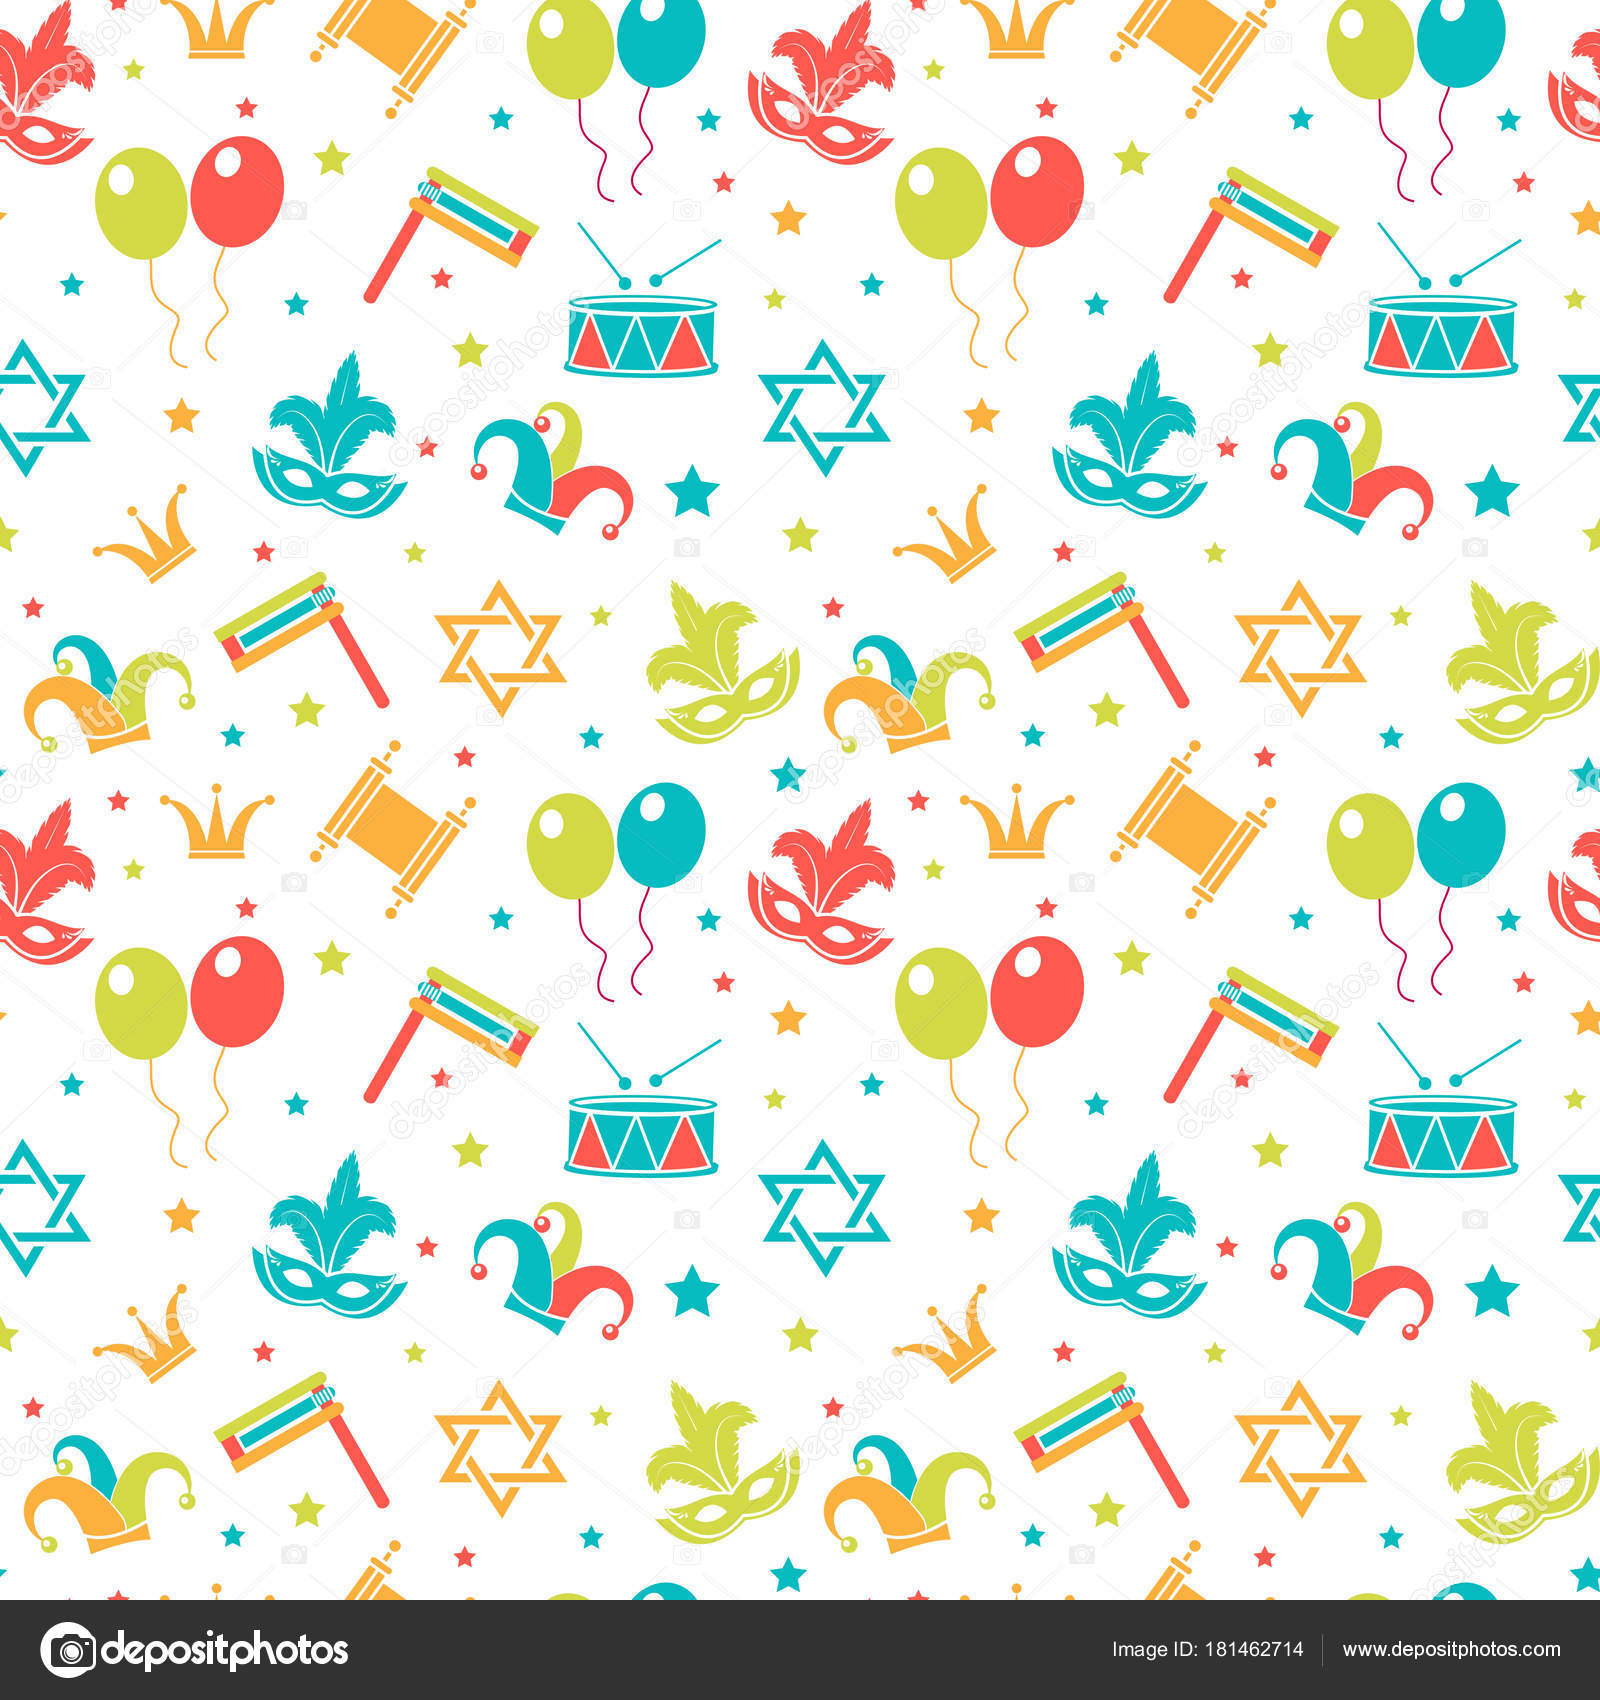 Carnival Seamless Pattern. Purim Repetitive Texture